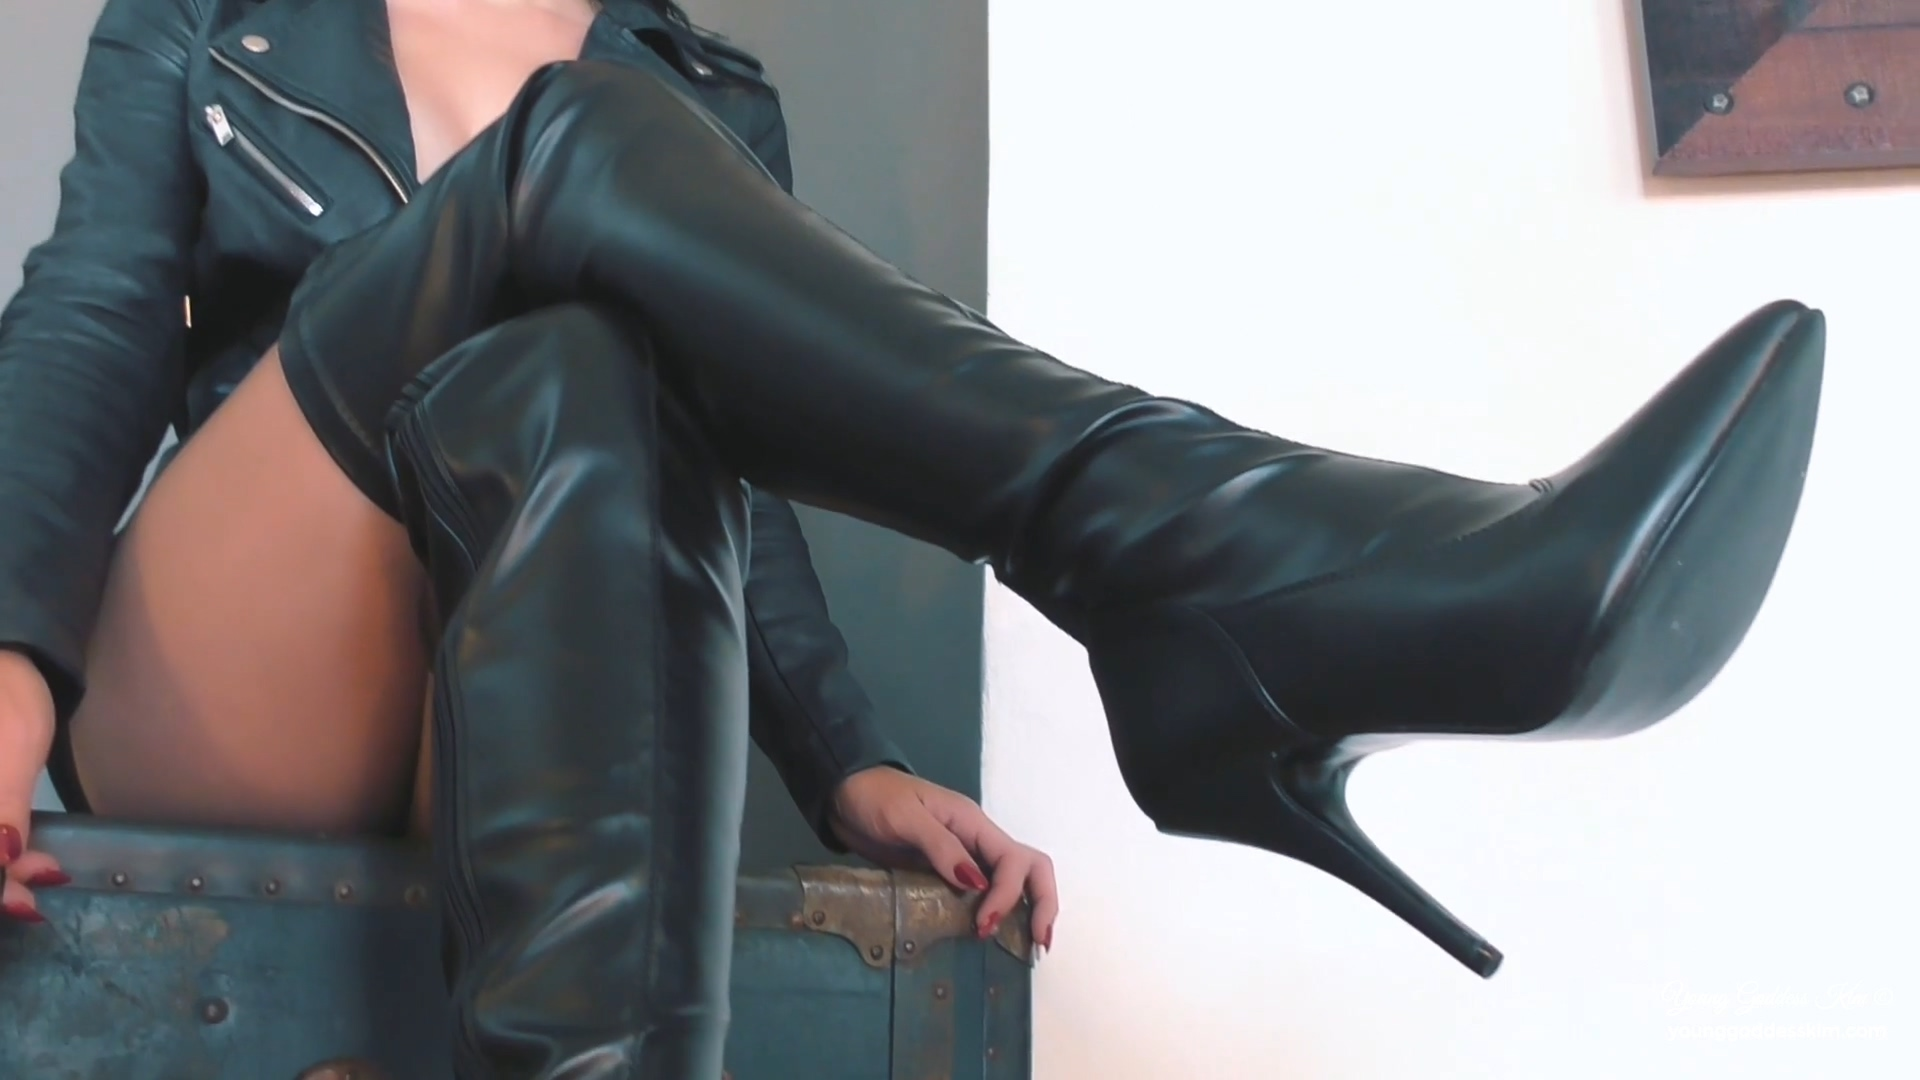 394289523_Leather_and_lust.mp4_20190330_124715.801_123_444lo.jpg